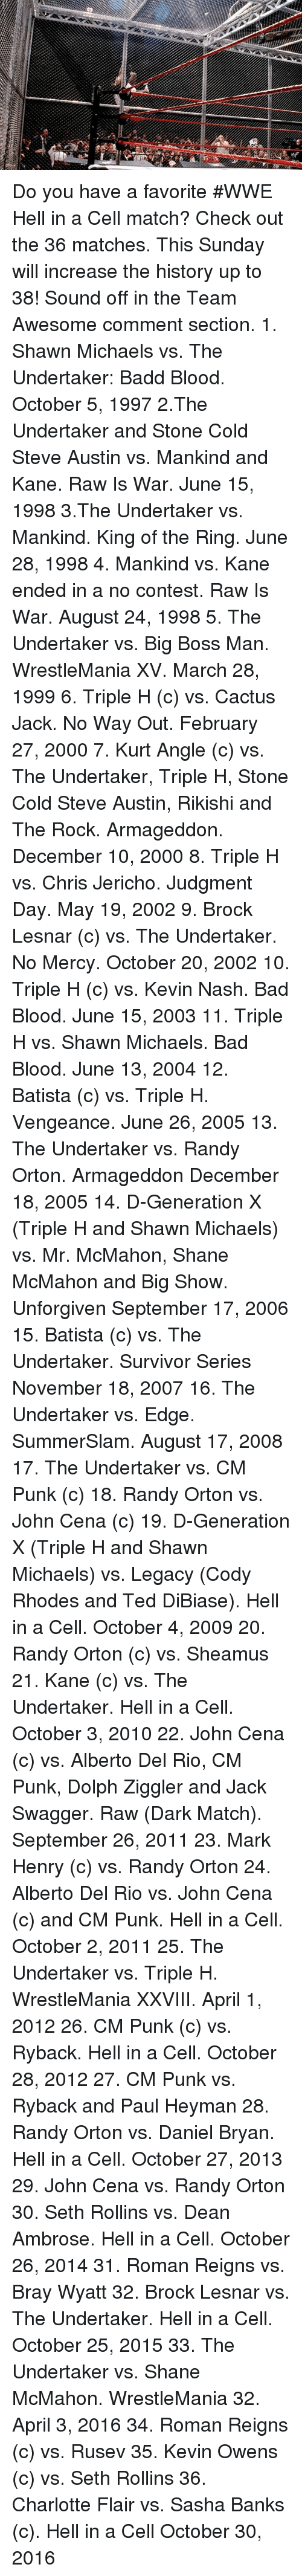 Bad, Bad Blood, and John Cena: Do you have a favorite #WWE Hell in a Cell match? Check out the 36 matches. This Sunday will increase the history up to 38! Sound off in the Team Awesome comment section.  1. Shawn Michaels vs. The Undertaker: Badd Blood. October 5, 1997 2.The Undertaker and Stone Cold Steve Austin vs. Mankind and Kane. Raw Is War. June 15, 1998 3.The Undertaker vs. Mankind. King of the Ring. June 28, 1998 4. Mankind vs. Kane ended in a no contest. Raw Is War. August 24, 1998 5. The Undertaker vs. Big Boss Man.  WrestleMania XV.  March 28, 1999 6.  Triple H (c) vs. Cactus Jack. No Way Out. February 27, 2000 7. Kurt Angle (c) vs. The Undertaker, Triple H, Stone Cold Steve Austin, Rikishi and The Rock.  Armageddon. December 10, 2000 8. Triple H vs. Chris Jericho. Judgment Day. May 19, 2002 9. Brock Lesnar (c) vs. The Undertaker. No Mercy. October 20, 2002 10. Triple H (c) vs. Kevin Nash. Bad Blood. June 15, 2003 11.  Triple H vs. Shawn Michaels. Bad Blood. June 13, 2004 12. Batista (c) vs. Triple H. Vengeance. June 26, 2005 13. The Undertaker vs. Randy Orton. Armageddon  December 18, 2005 14. D-Generation X (Triple H and Shawn Michaels) vs. Mr. McMahon, Shane McMahon and Big Show.  Unforgiven  September 17, 2006 15.   Batista (c) vs. The Undertaker.  Survivor Series  November 18, 2007 16. The Undertaker vs. Edge. SummerSlam. August 17, 2008 17. The Undertaker vs. CM Punk (c) 18. Randy Orton vs. John Cena (c) 19. D-Generation X (Triple H and Shawn Michaels) vs. Legacy (Cody Rhodes and Ted DiBiase). Hell in a Cell. October 4, 2009 20. Randy Orton (c) vs. Sheamus  21. Kane (c) vs. The Undertaker. Hell in a Cell. October 3, 2010 22. John Cena (c) vs. Alberto Del Rio, CM Punk, Dolph Ziggler and Jack Swagger.   Raw (Dark Match). September 26, 2011 23. Mark Henry (c) vs. Randy Orton  24. Alberto Del Rio vs. John Cena (c) and CM Punk. Hell in a Cell. October 2, 2011 25. The Undertaker vs. Triple H. WrestleMania XXVIII. April 1, 2012 26. CM Punk (c) vs. Ryback. H